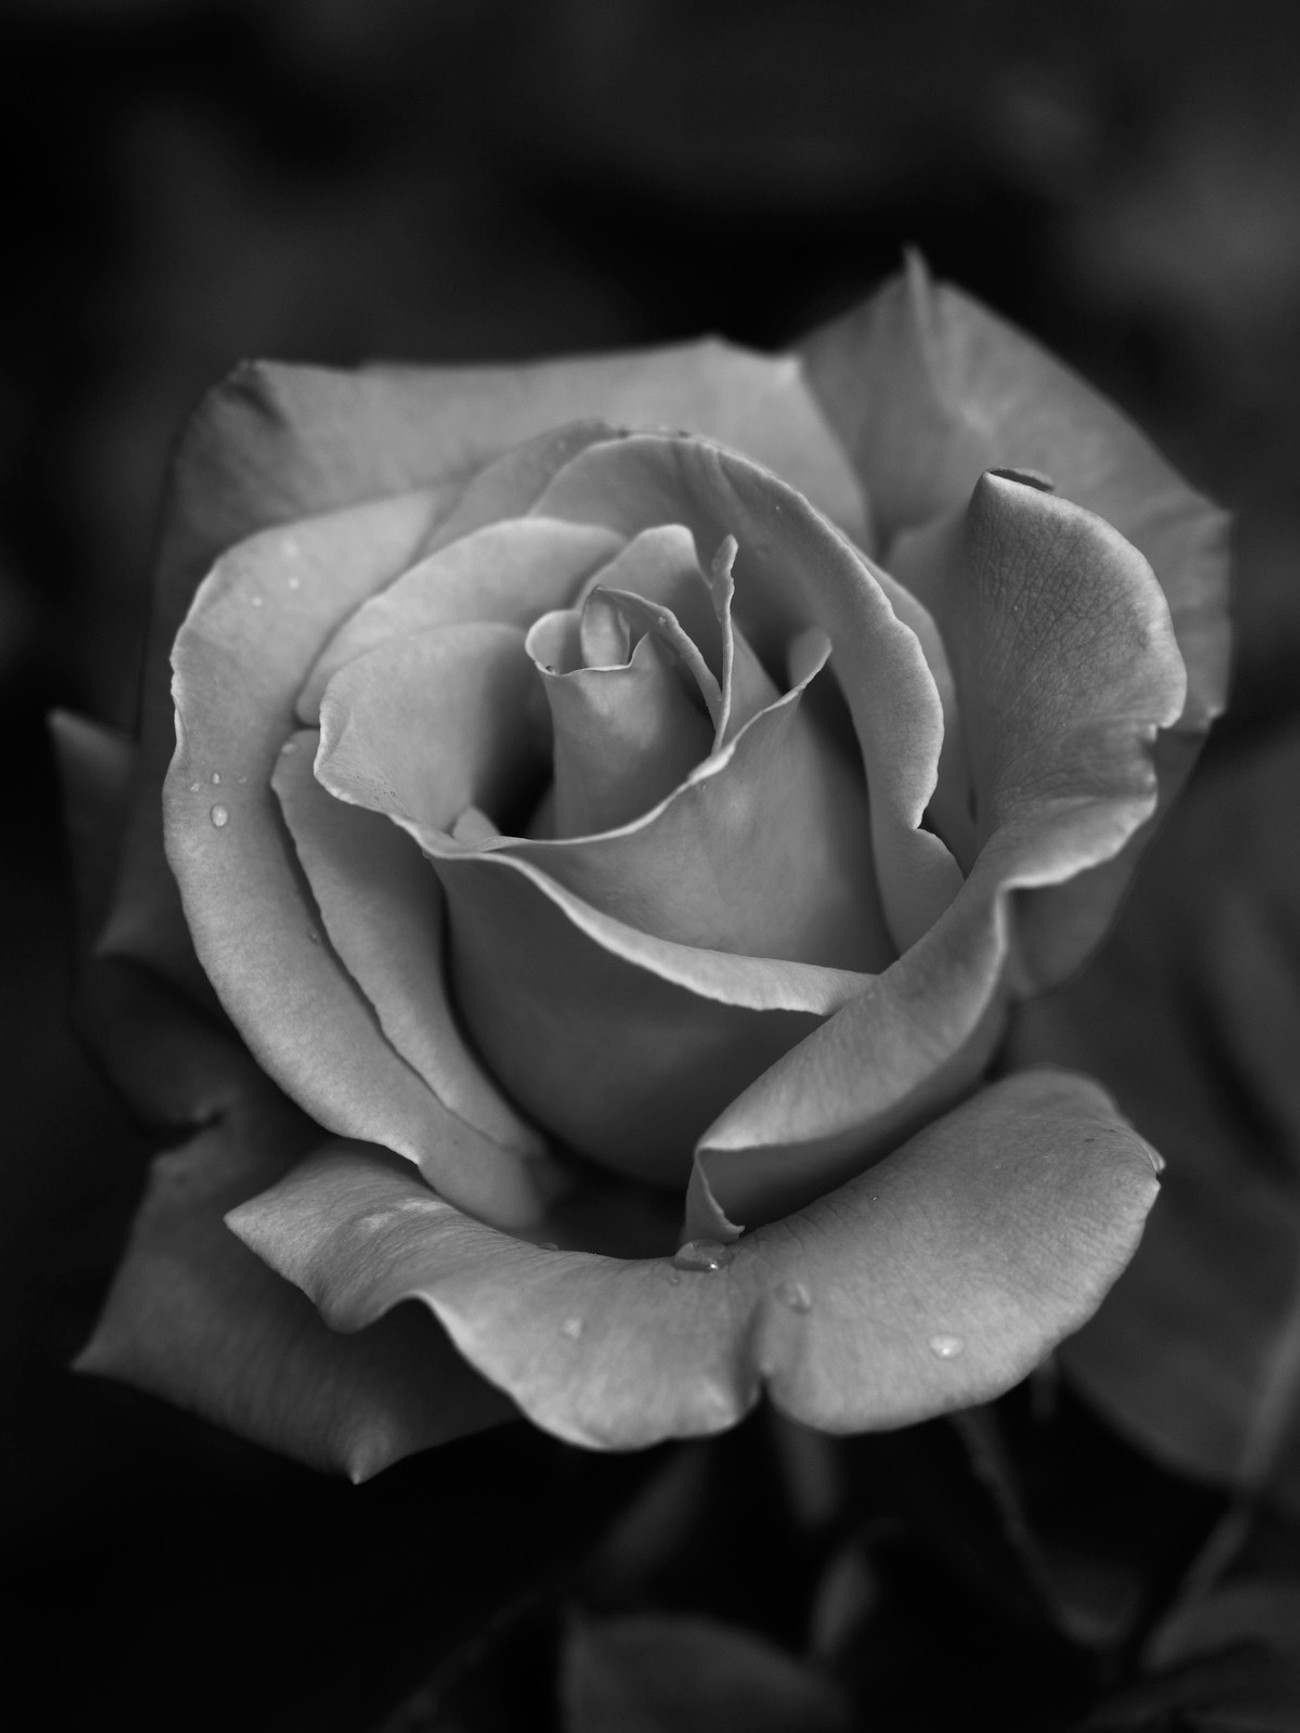 another one of my rose photos in black and white, this was a single coloured rose originally but it has nice highlights on the edges of the petals that give great definition to the rose shape